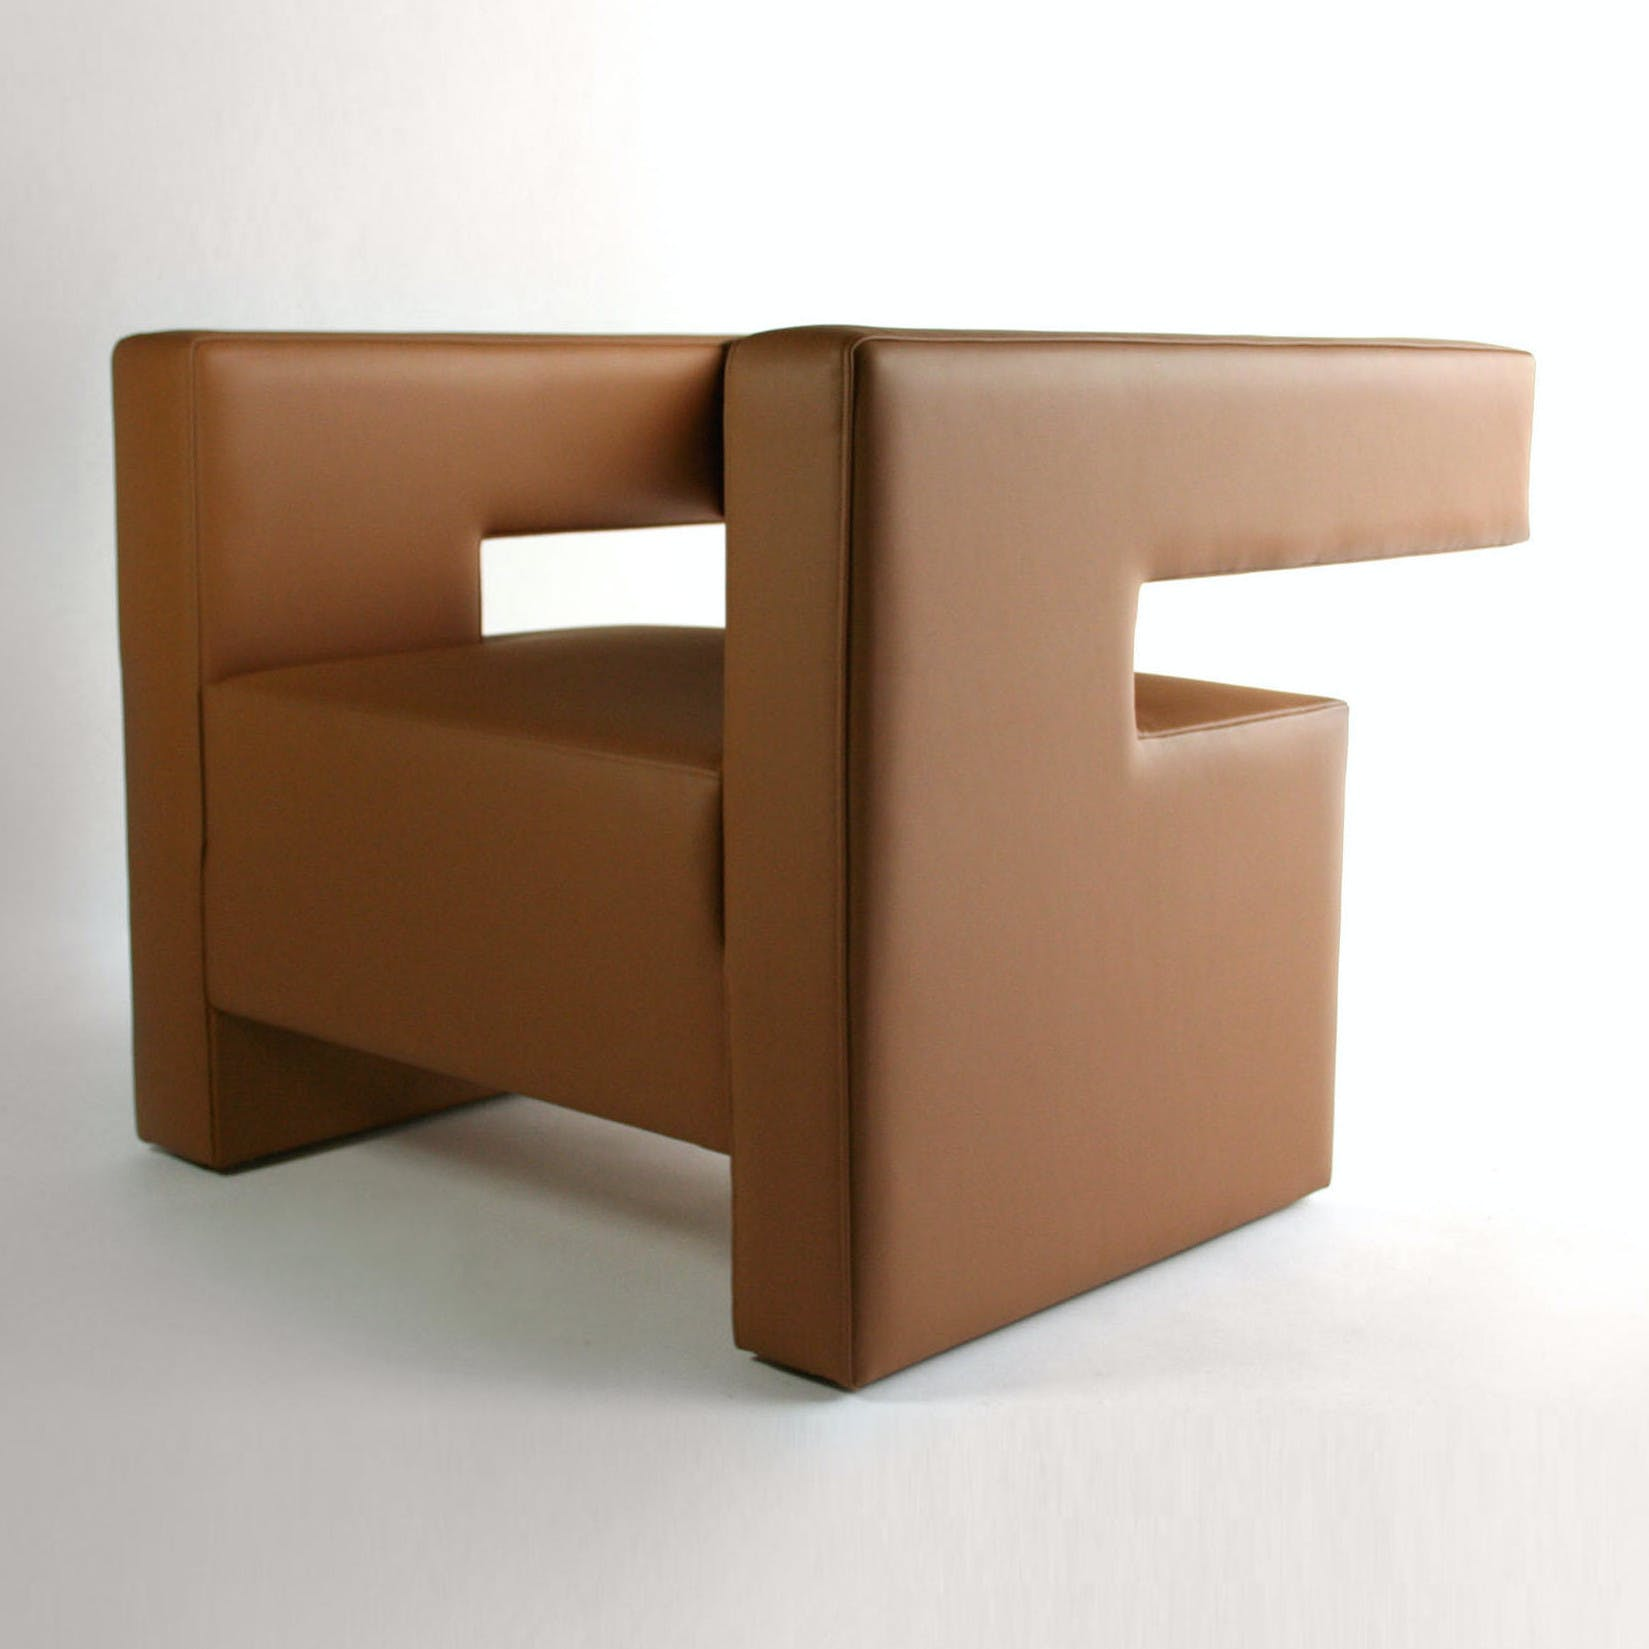 Phase Design Bbc2 Chair Angle Haute Living